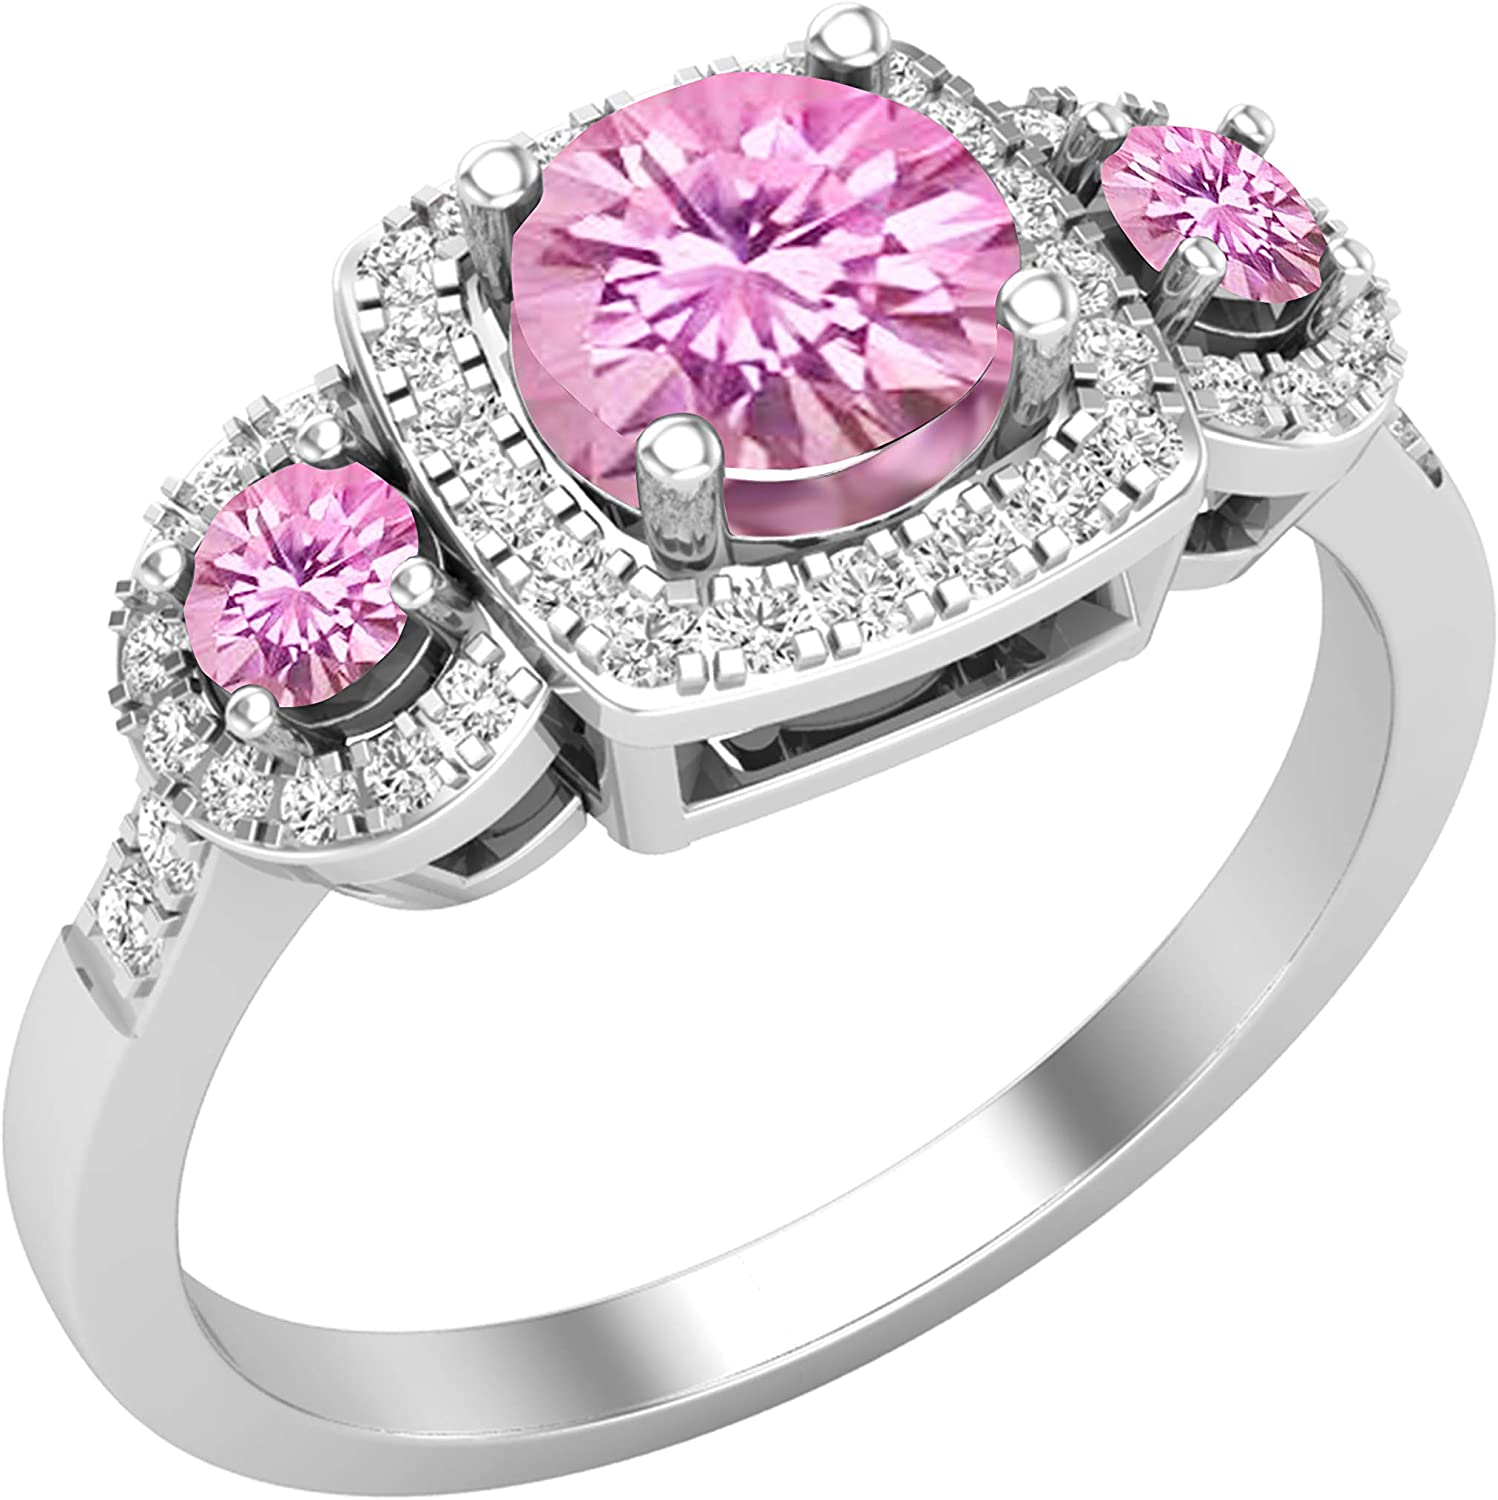 Dazzlingrock Collection Round security Finally popular brand Lab Natura Created Pink Sapphire